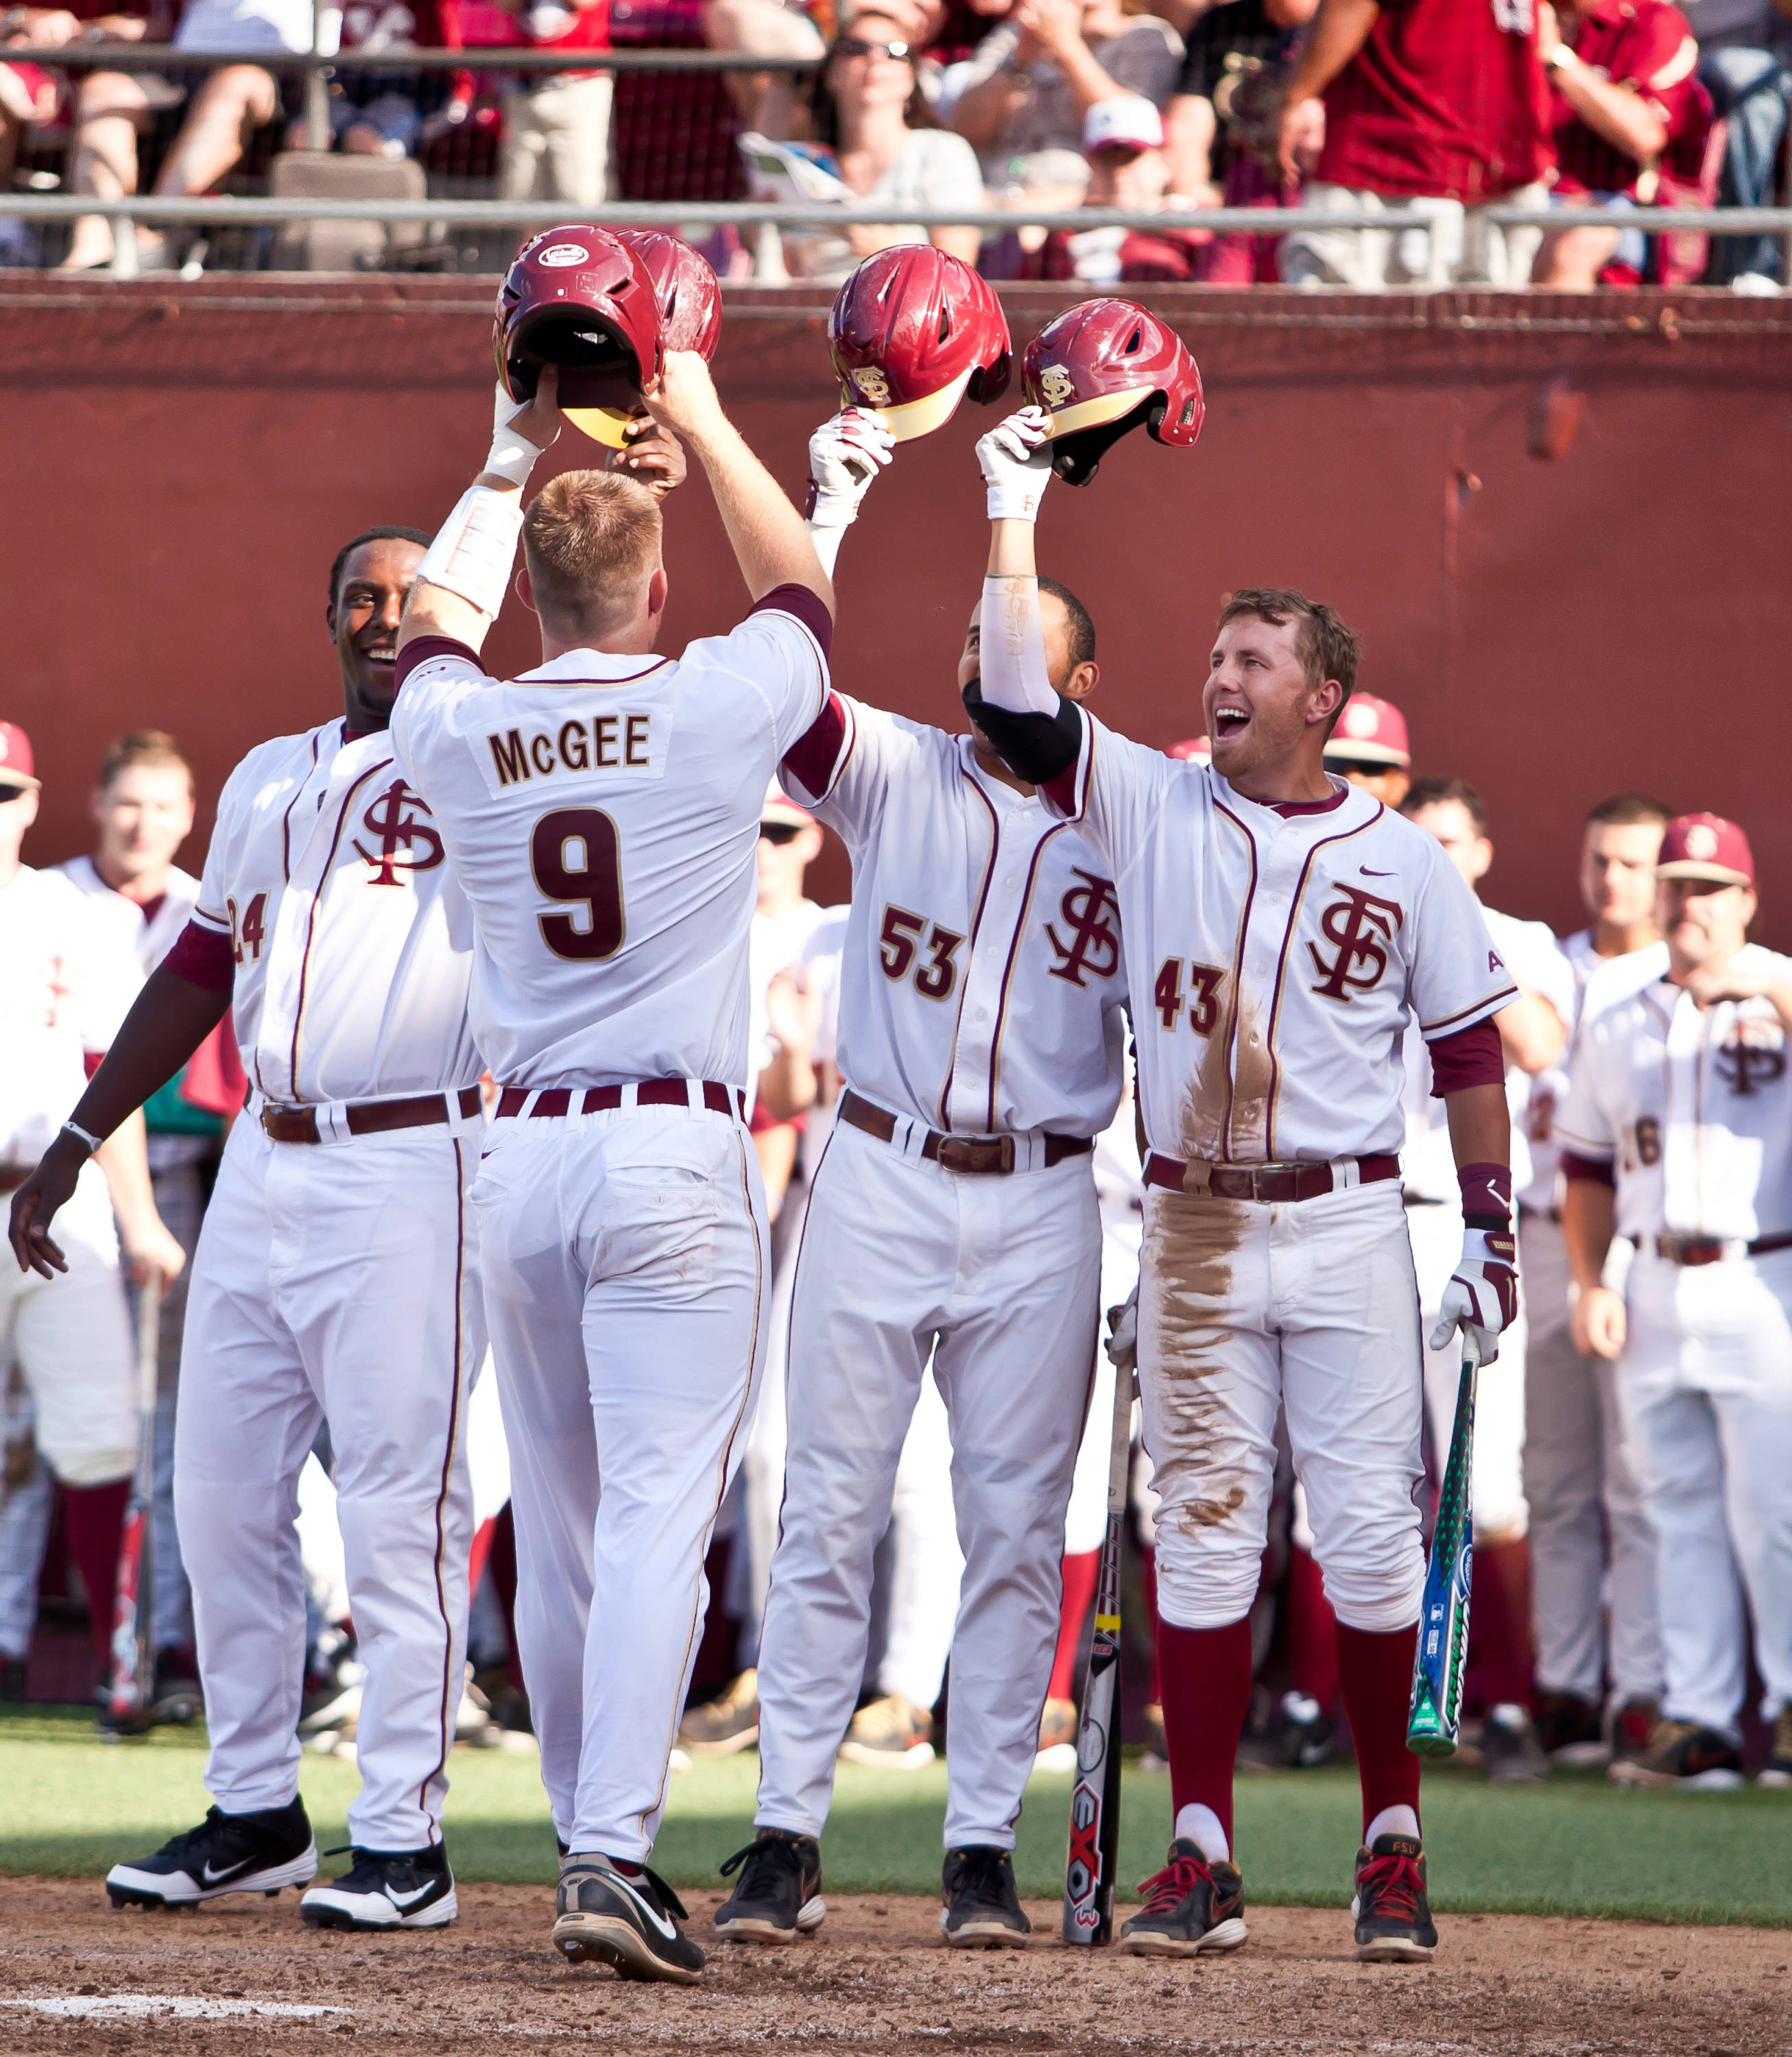 The Seminoles greet Stephen McGee at the plate after the Florida State catcher hit a two-run home run.